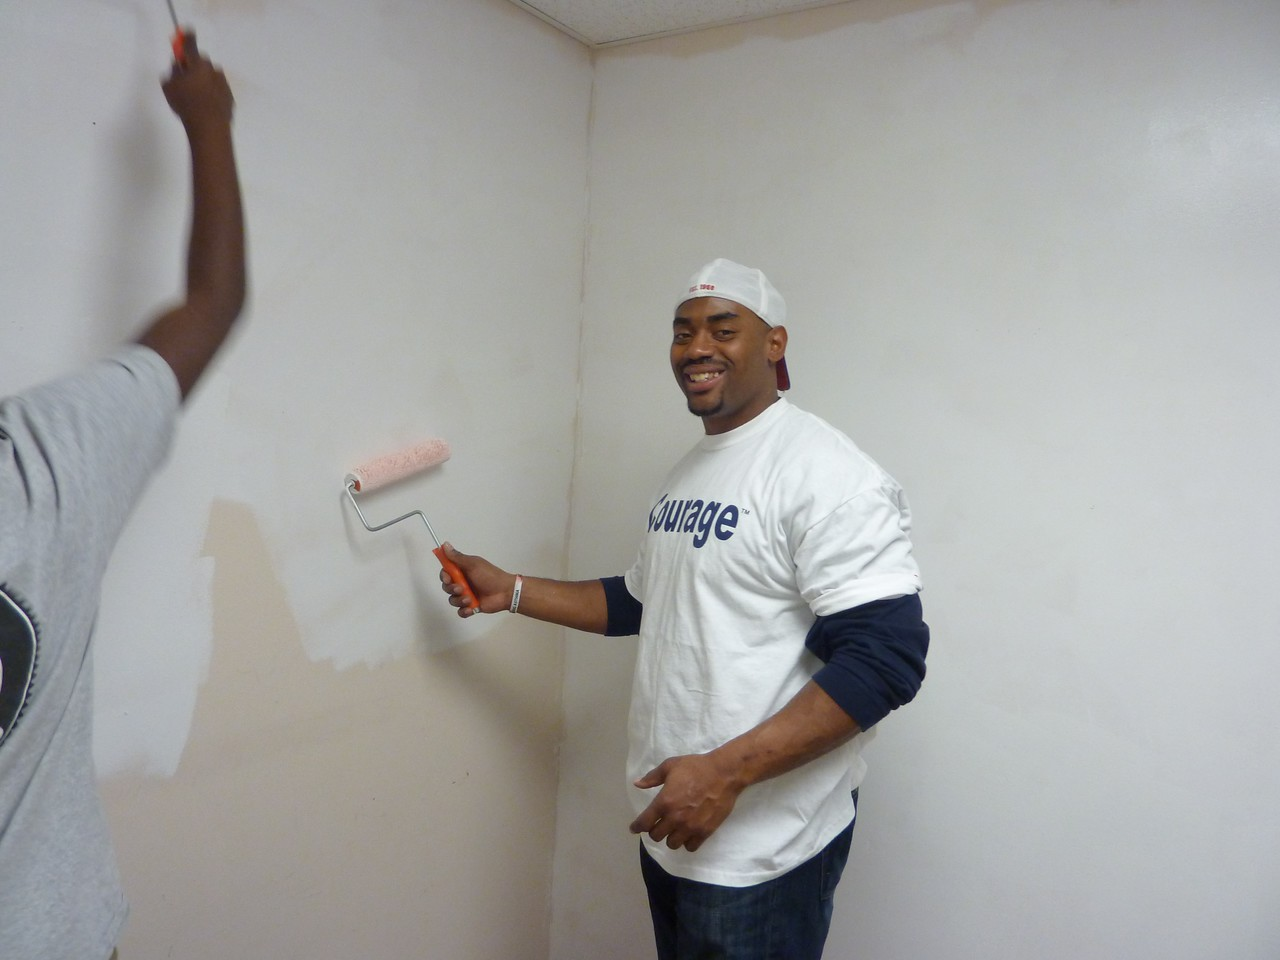 MLK Day, January 18, 2010: Buffalo Bills linebacker Chris Draft served as an MLK Day ambassador. He participated in numerous Kin Day activities, including a painting project at a Buffalo community center.